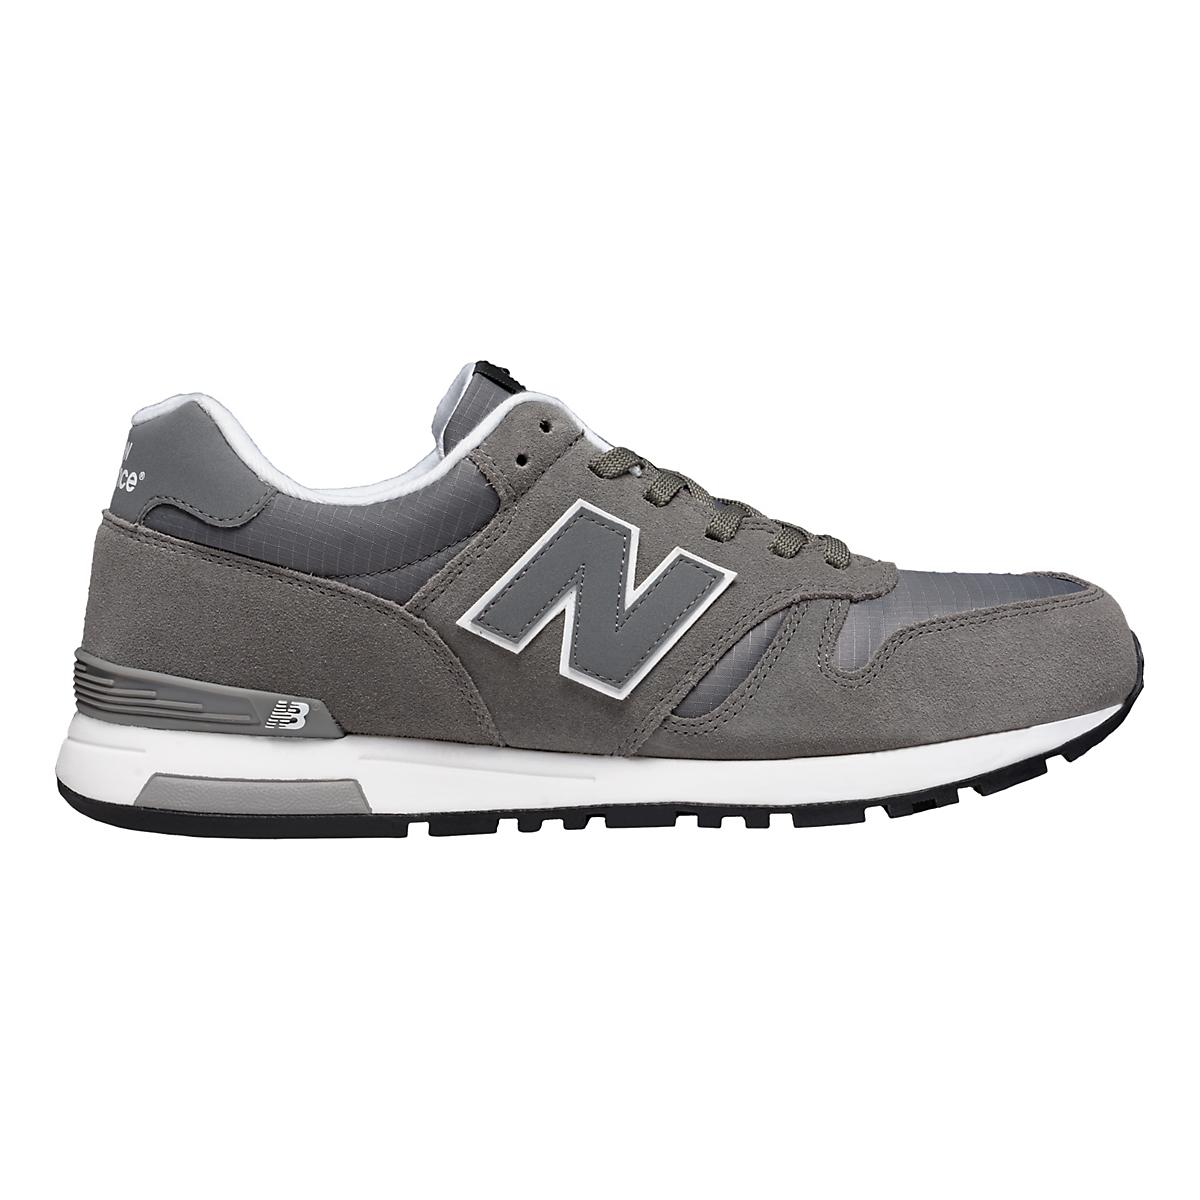 mens new balance 565 casual shoe at road runner sports. Black Bedroom Furniture Sets. Home Design Ideas